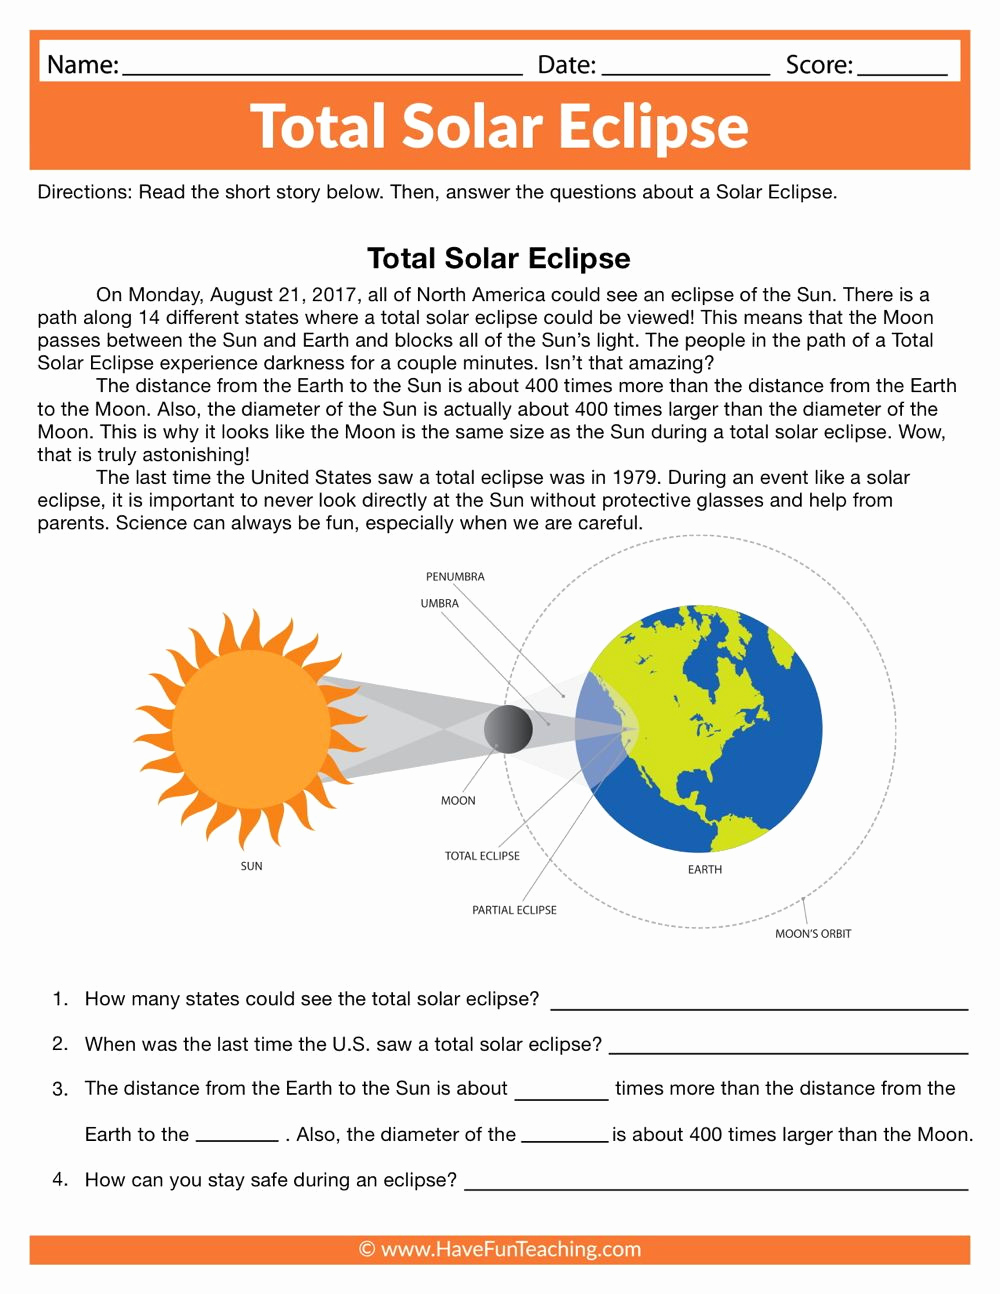 Eclipse Worksheets for Middle School Lovely 20 solar Eclipse Worksheets Middle School